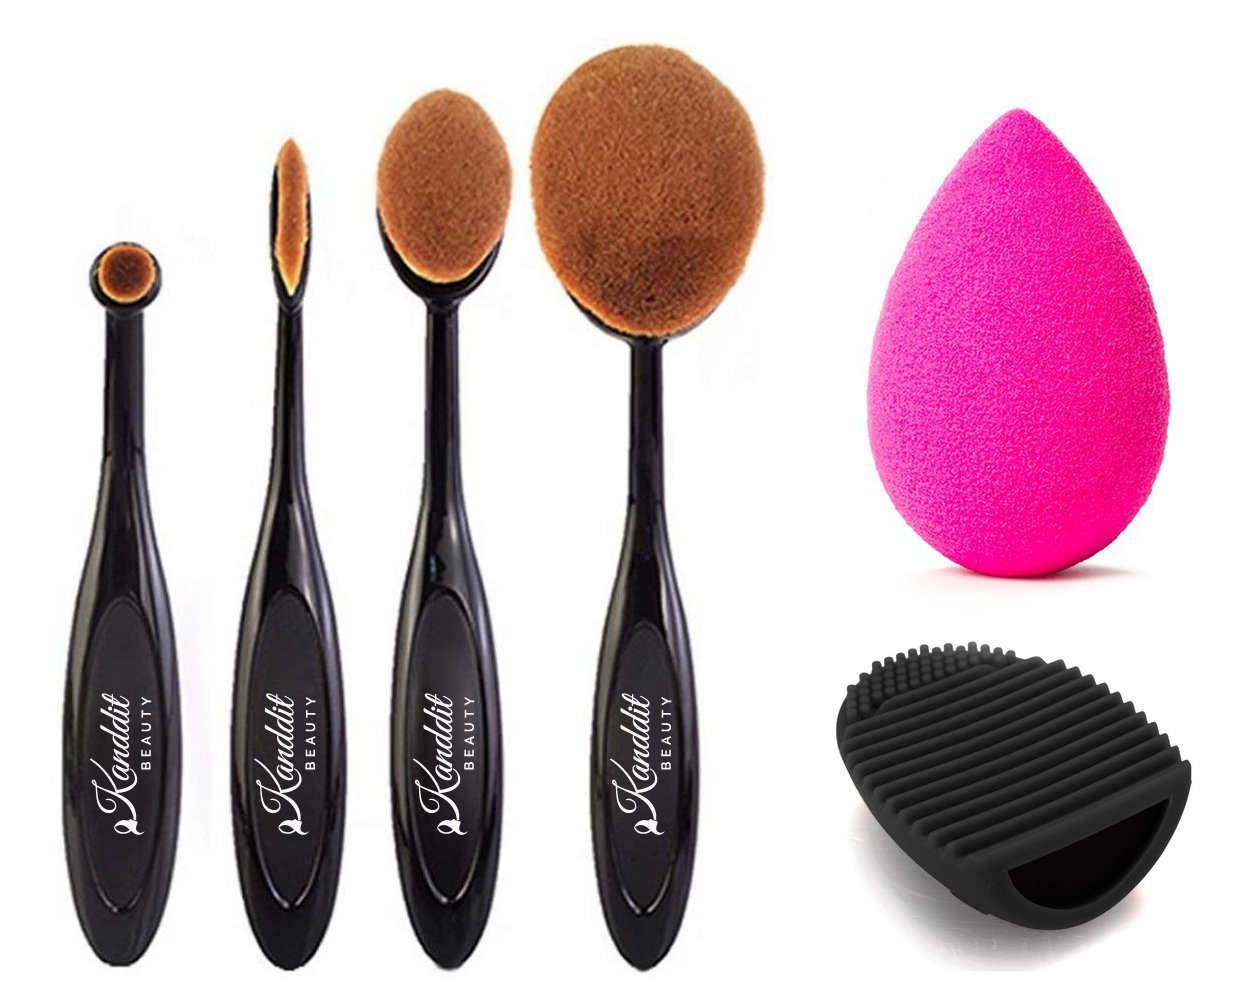 Kanddit 4 Pcs/Set Makeup Toothbrush Shape Oval Makeup Brushes Set Foundation Contour Powder Eyebrow Blush Eyeshadow Brush Set by Amazon